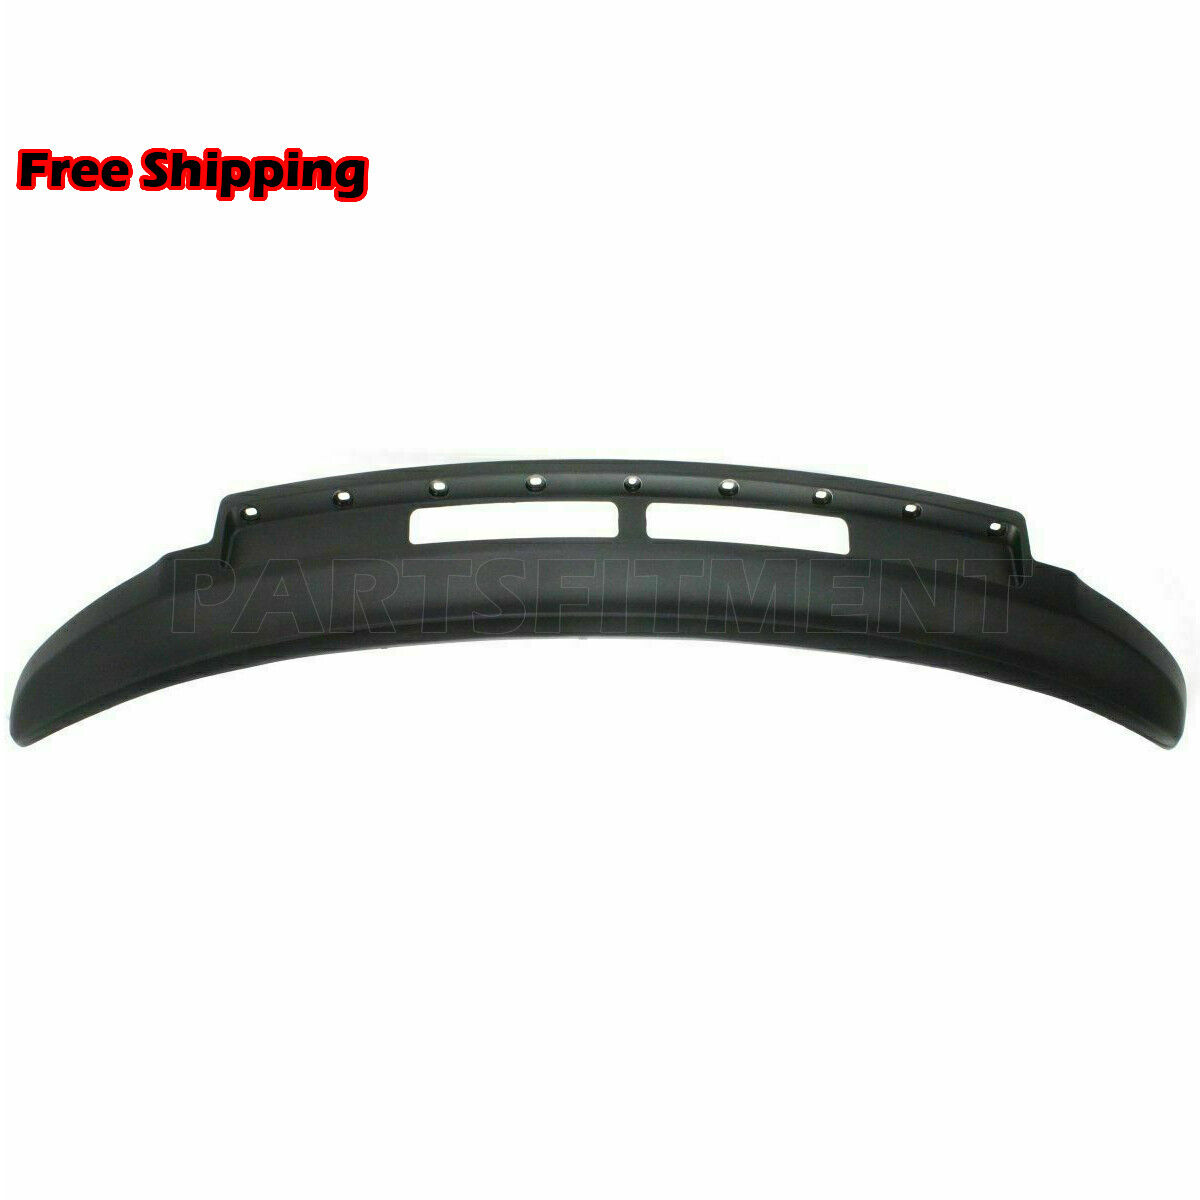 New Front Air Dam Deflector Valance Lower For Toyota Pickup TO1095105 1992-1995